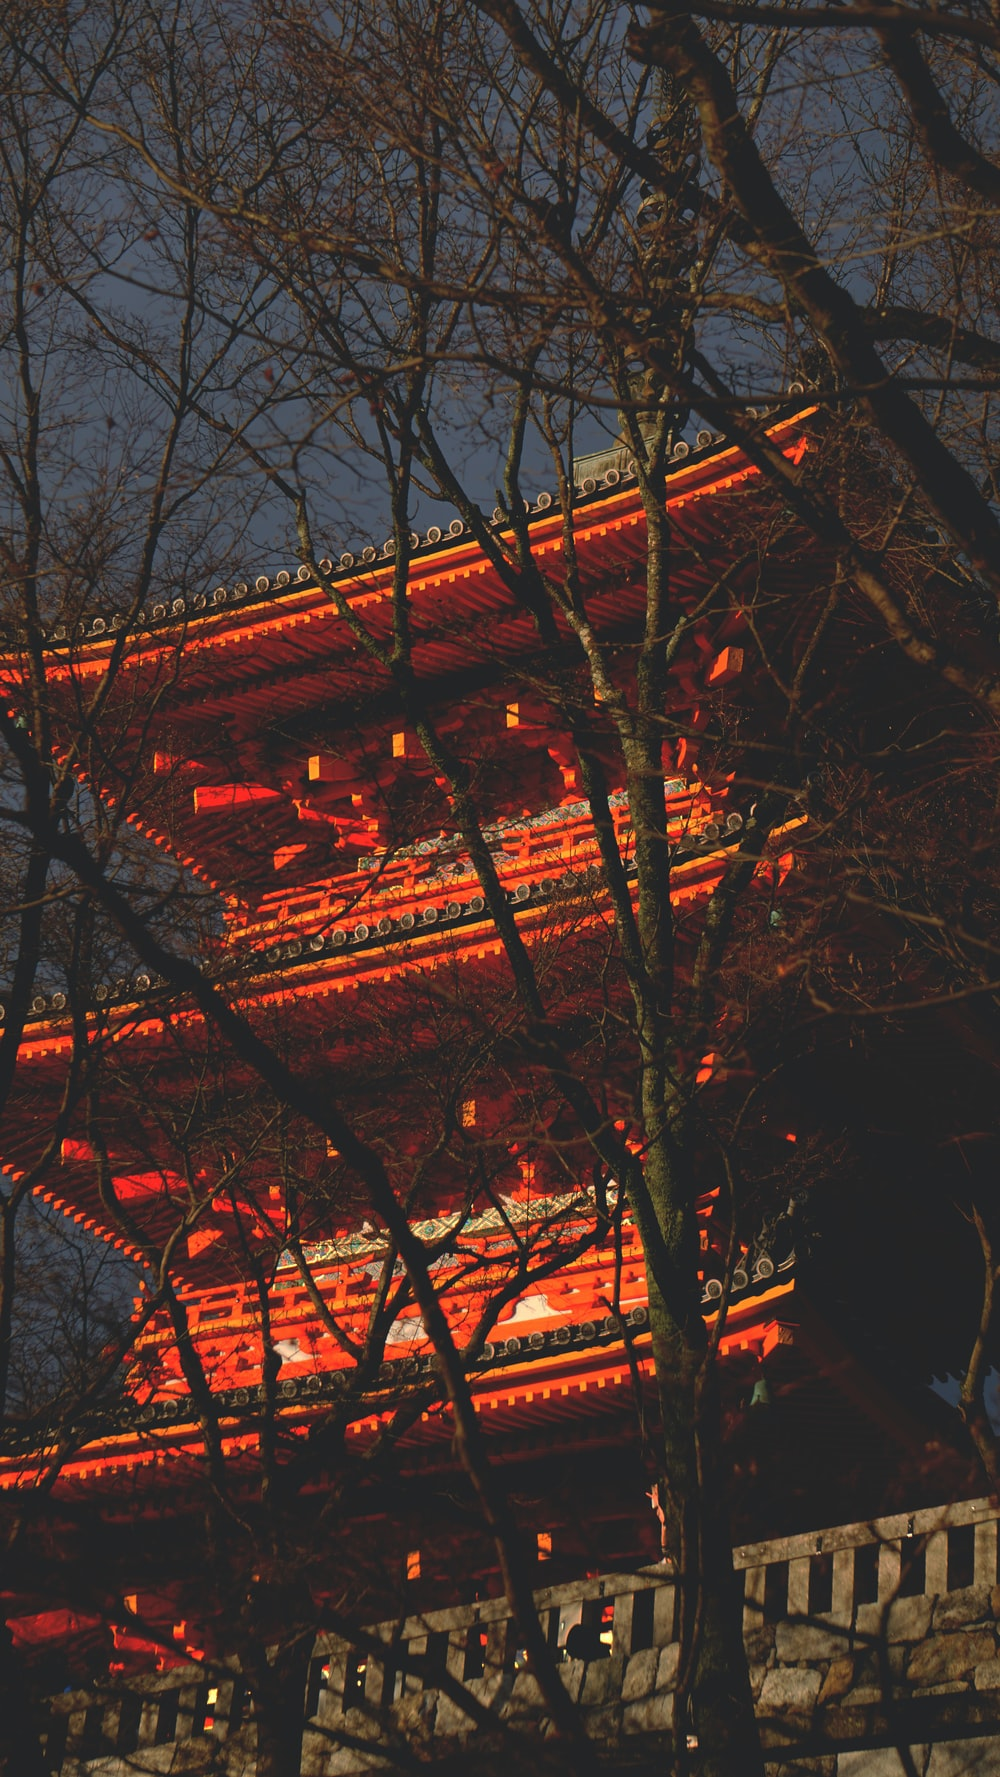 red temple surrounded by trees at nighttime